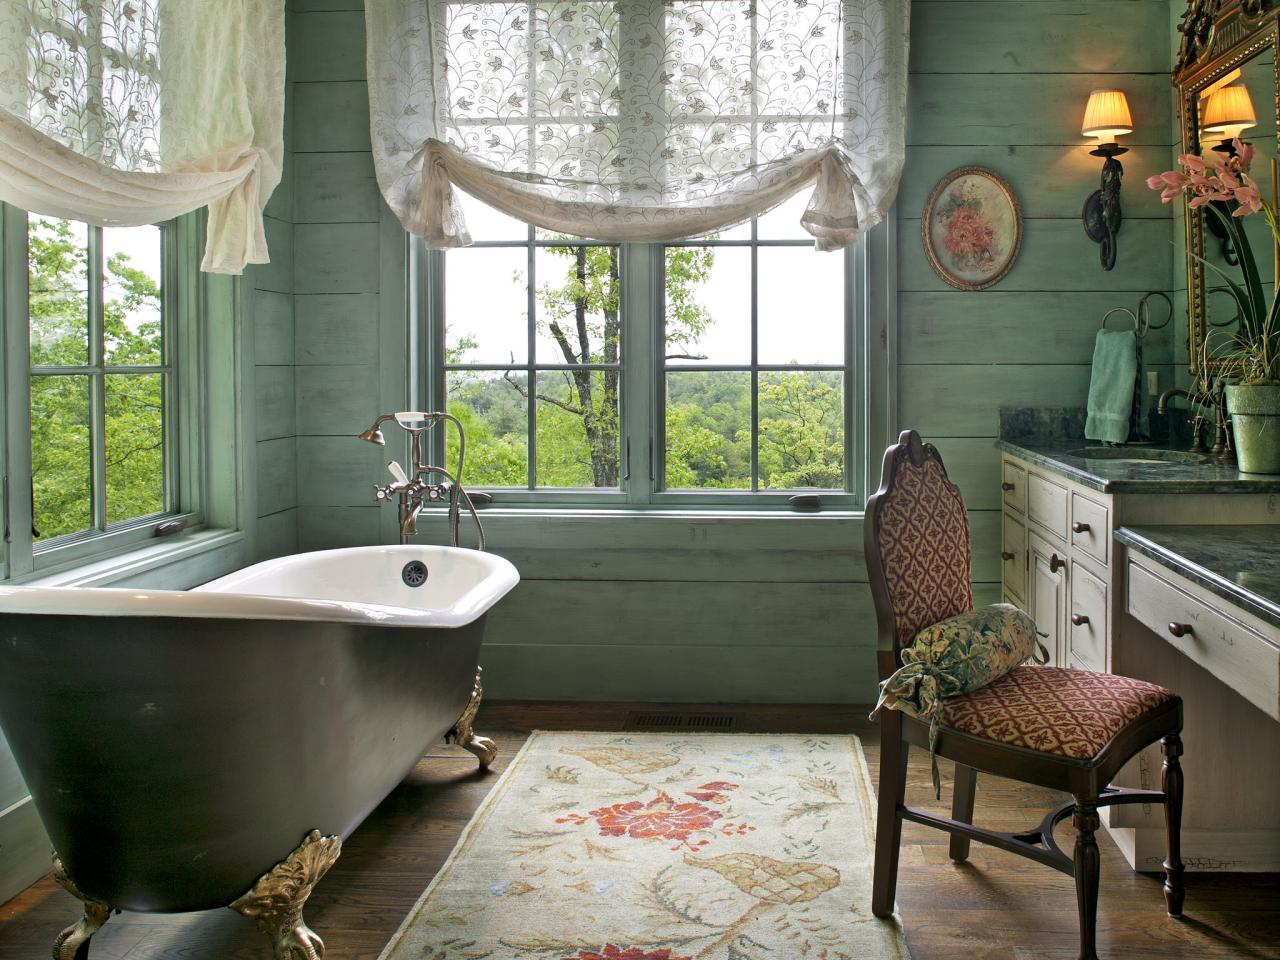 Bathroom Window Covering The Most Popular Ideas For Bathroom Curtains Diy